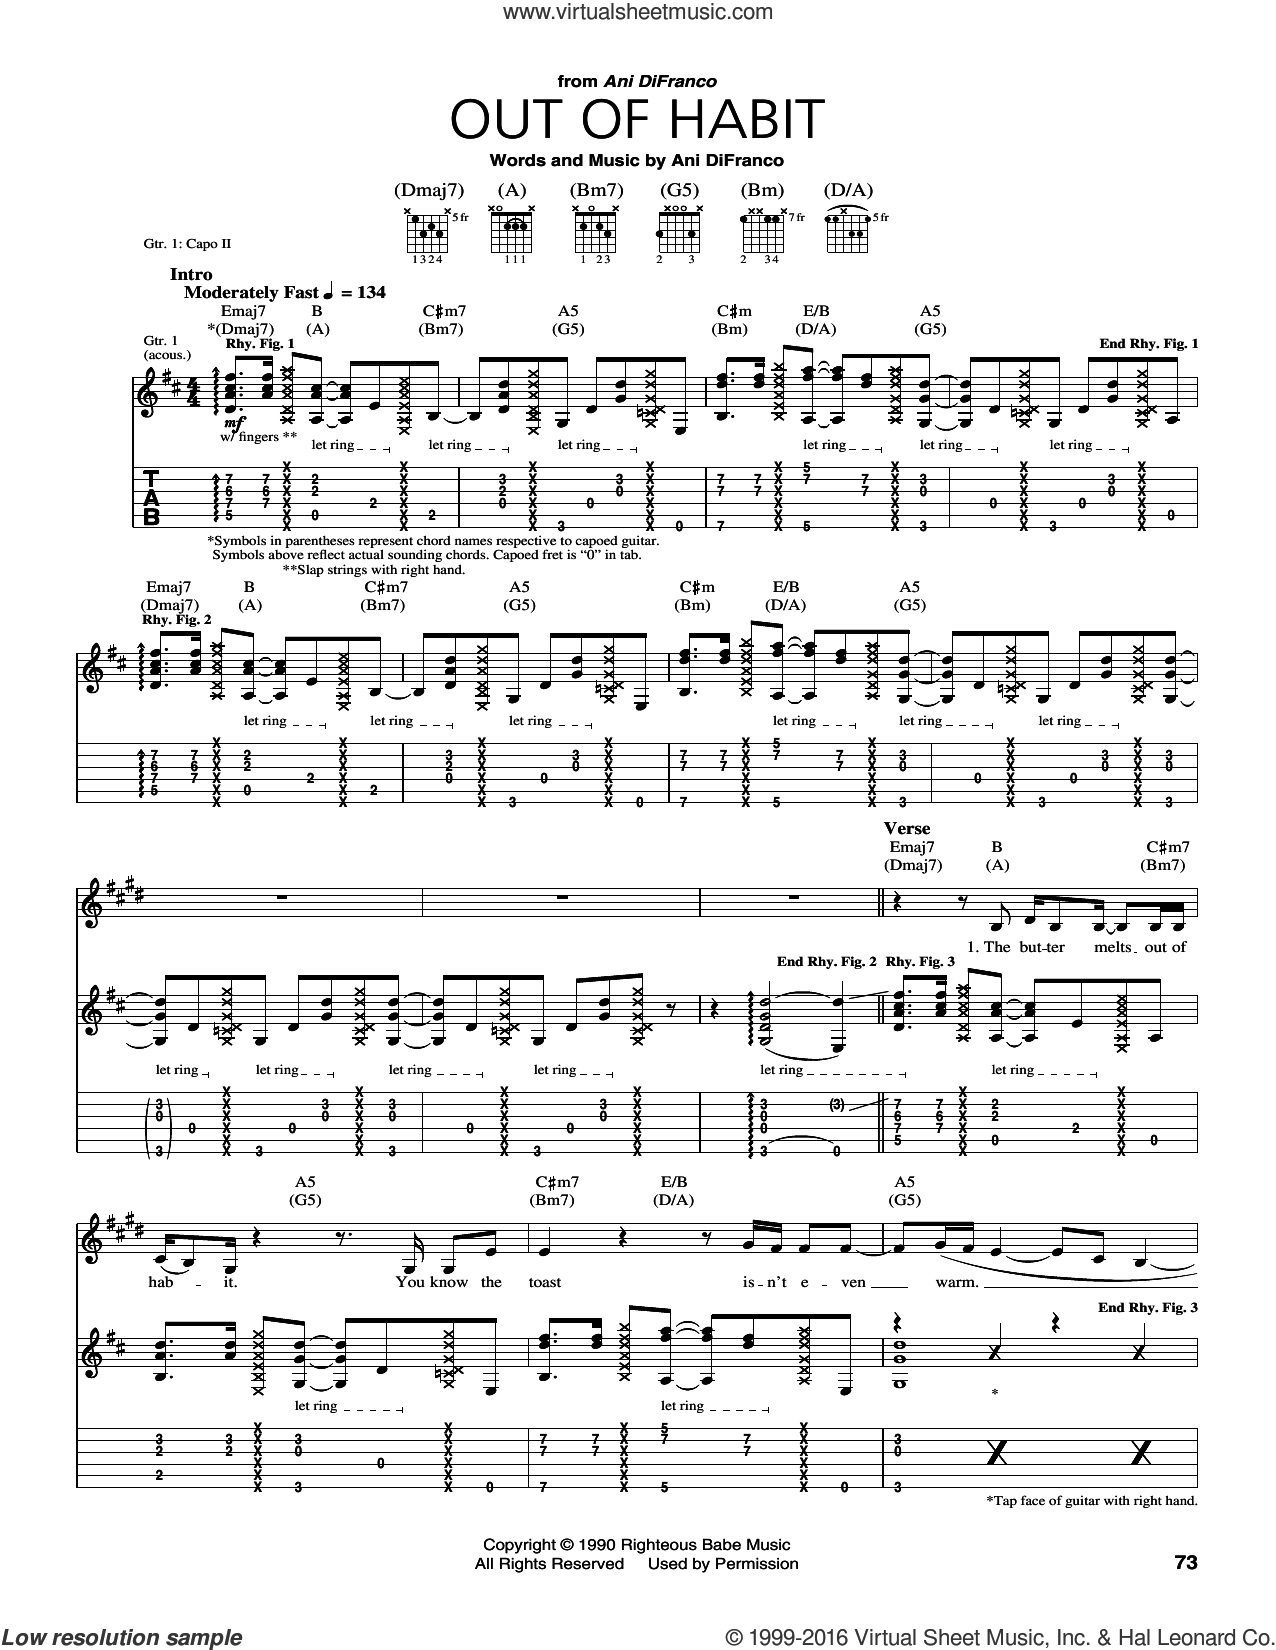 Out Of Habit sheet music for guitar (tablature) by Ani DiFranco. Score Image Preview.